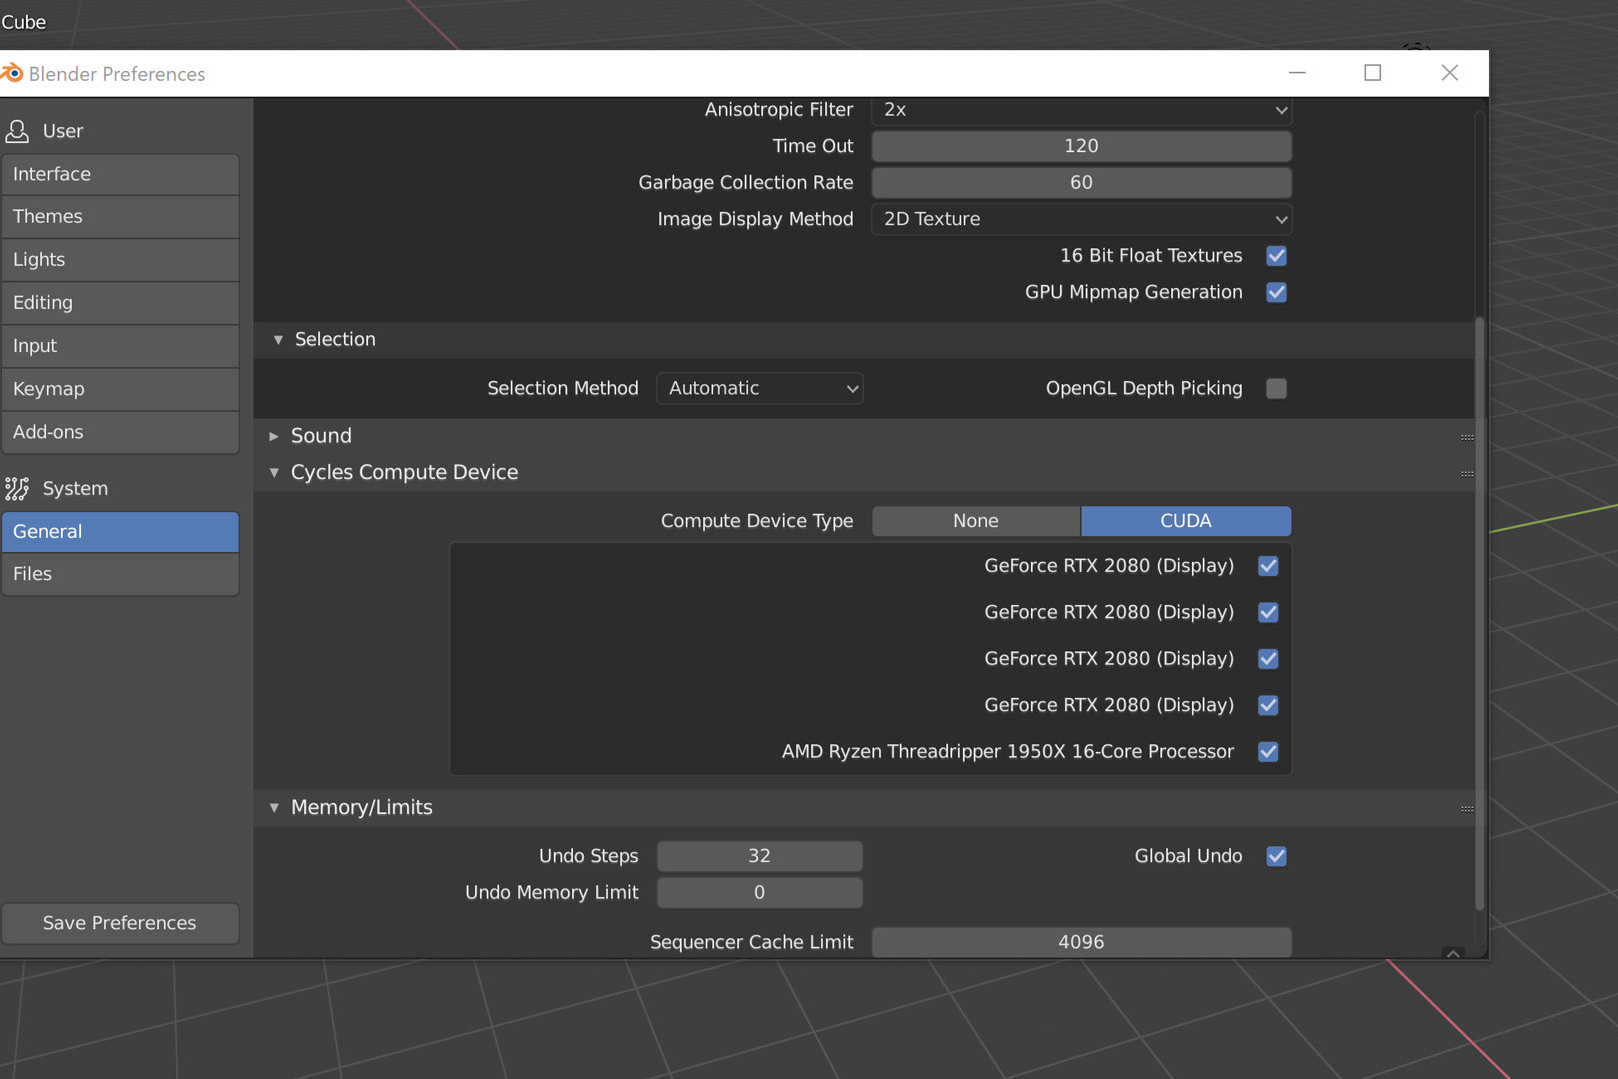 System Settings Blender